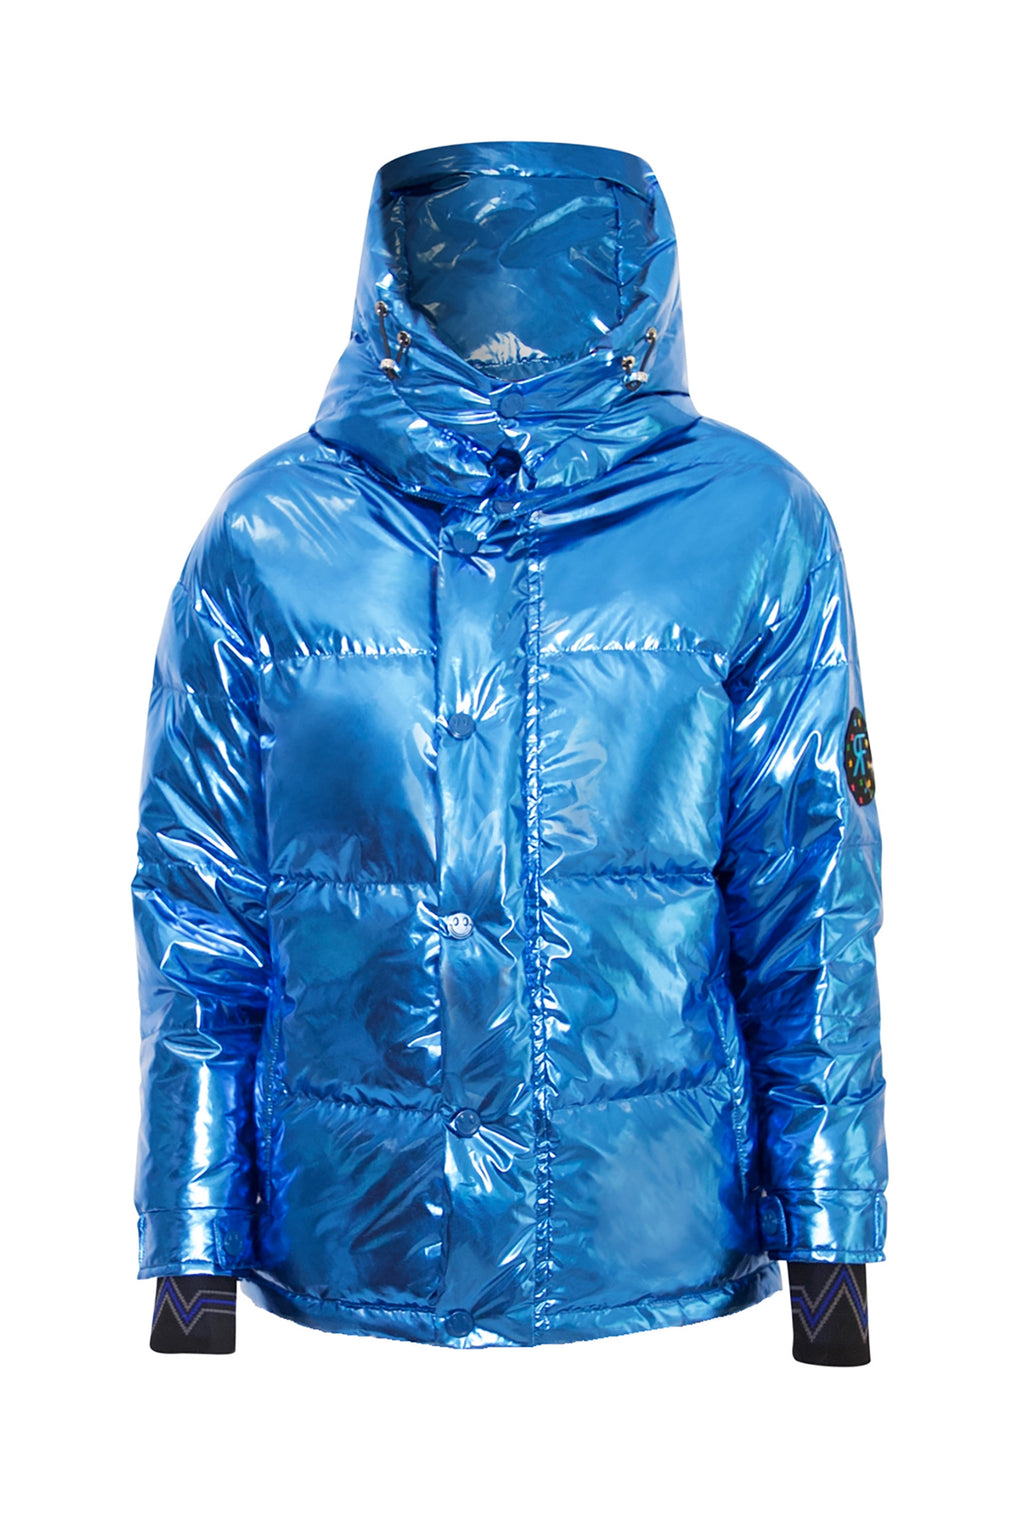 Metallic Blue Puffer Jacket